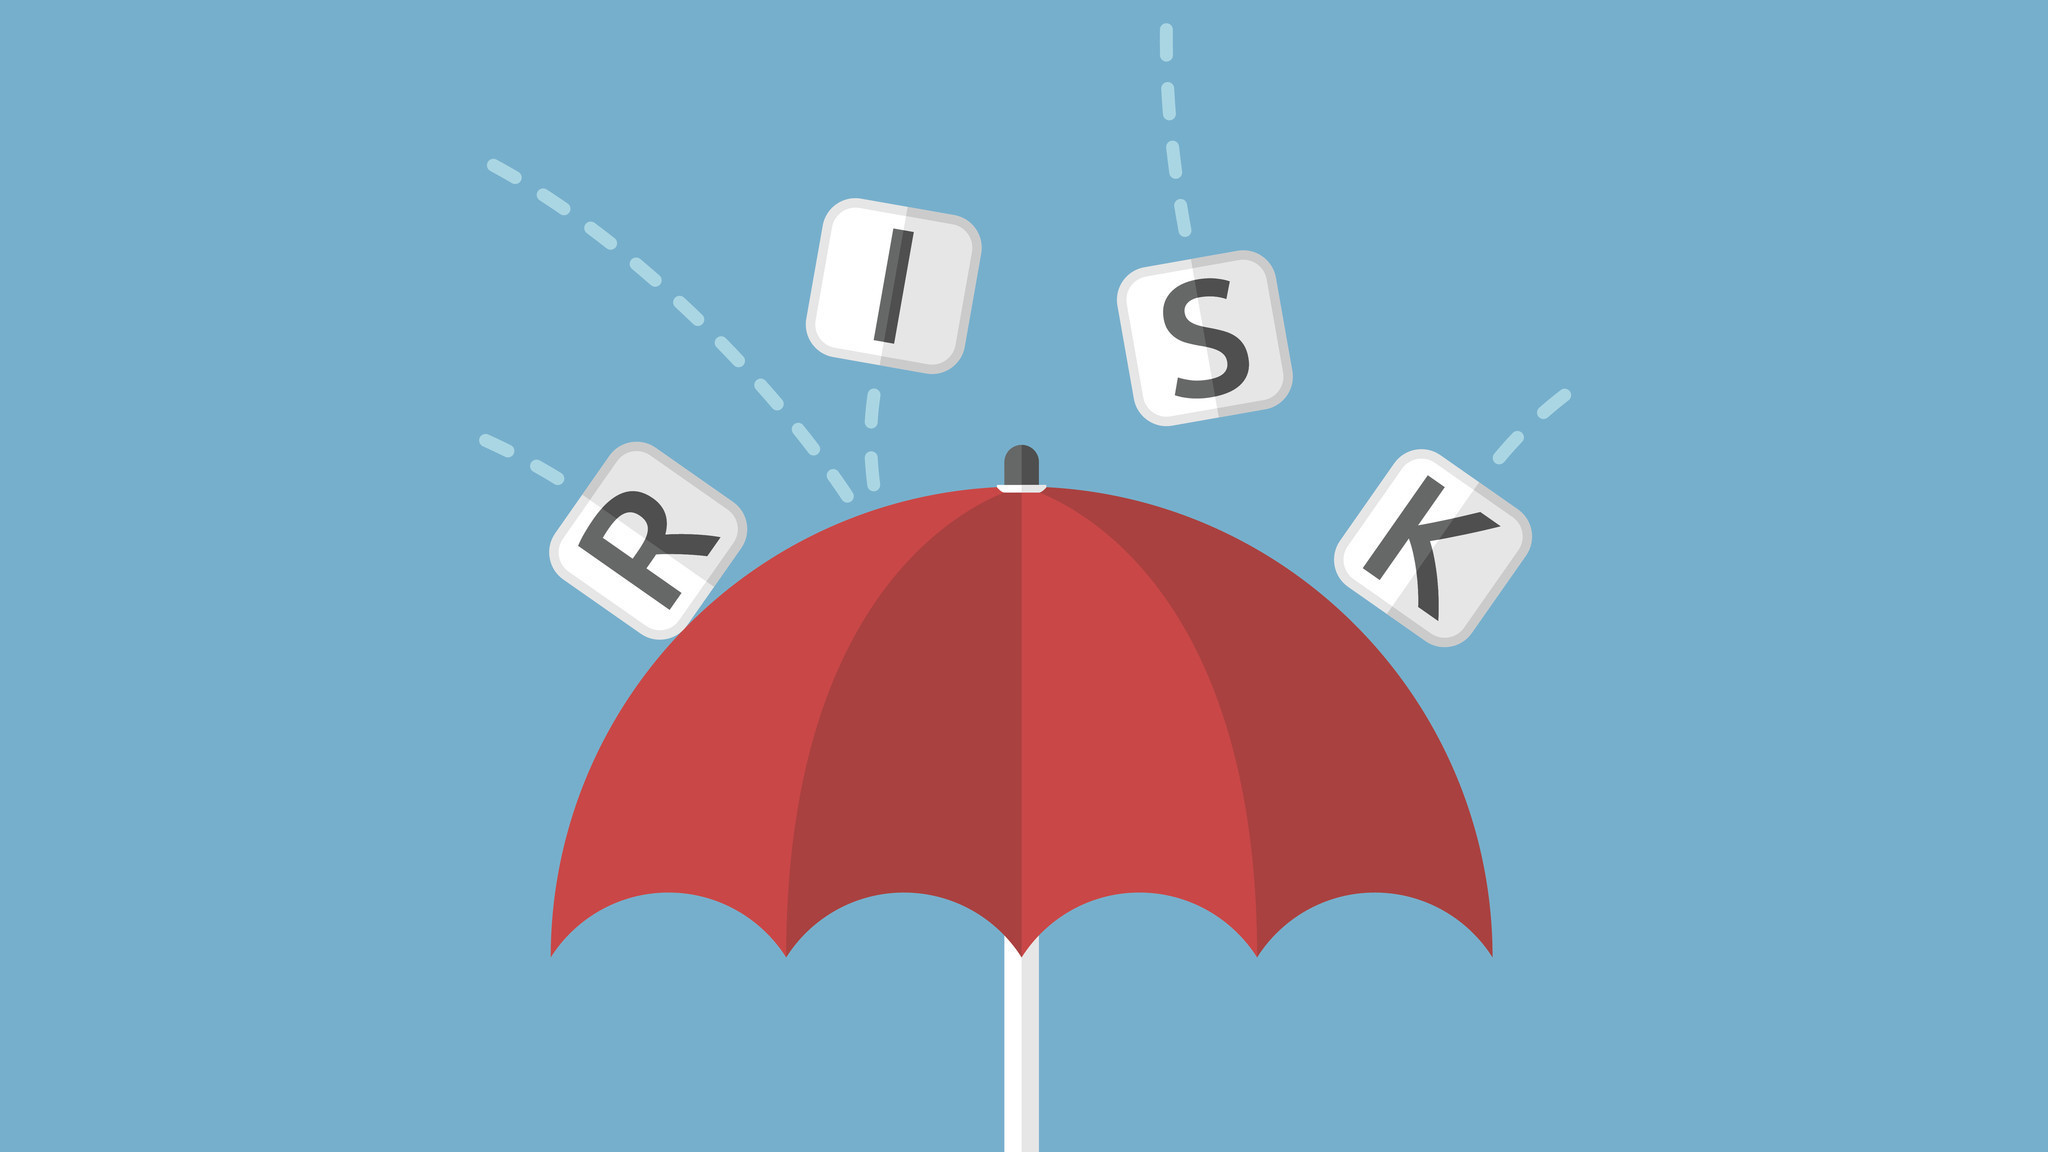 article on risk management Managing 21st-century political risk risk management magazine article  risk management is too often treated as a compliance issue that can be solved by drawing up lots of rules and making .